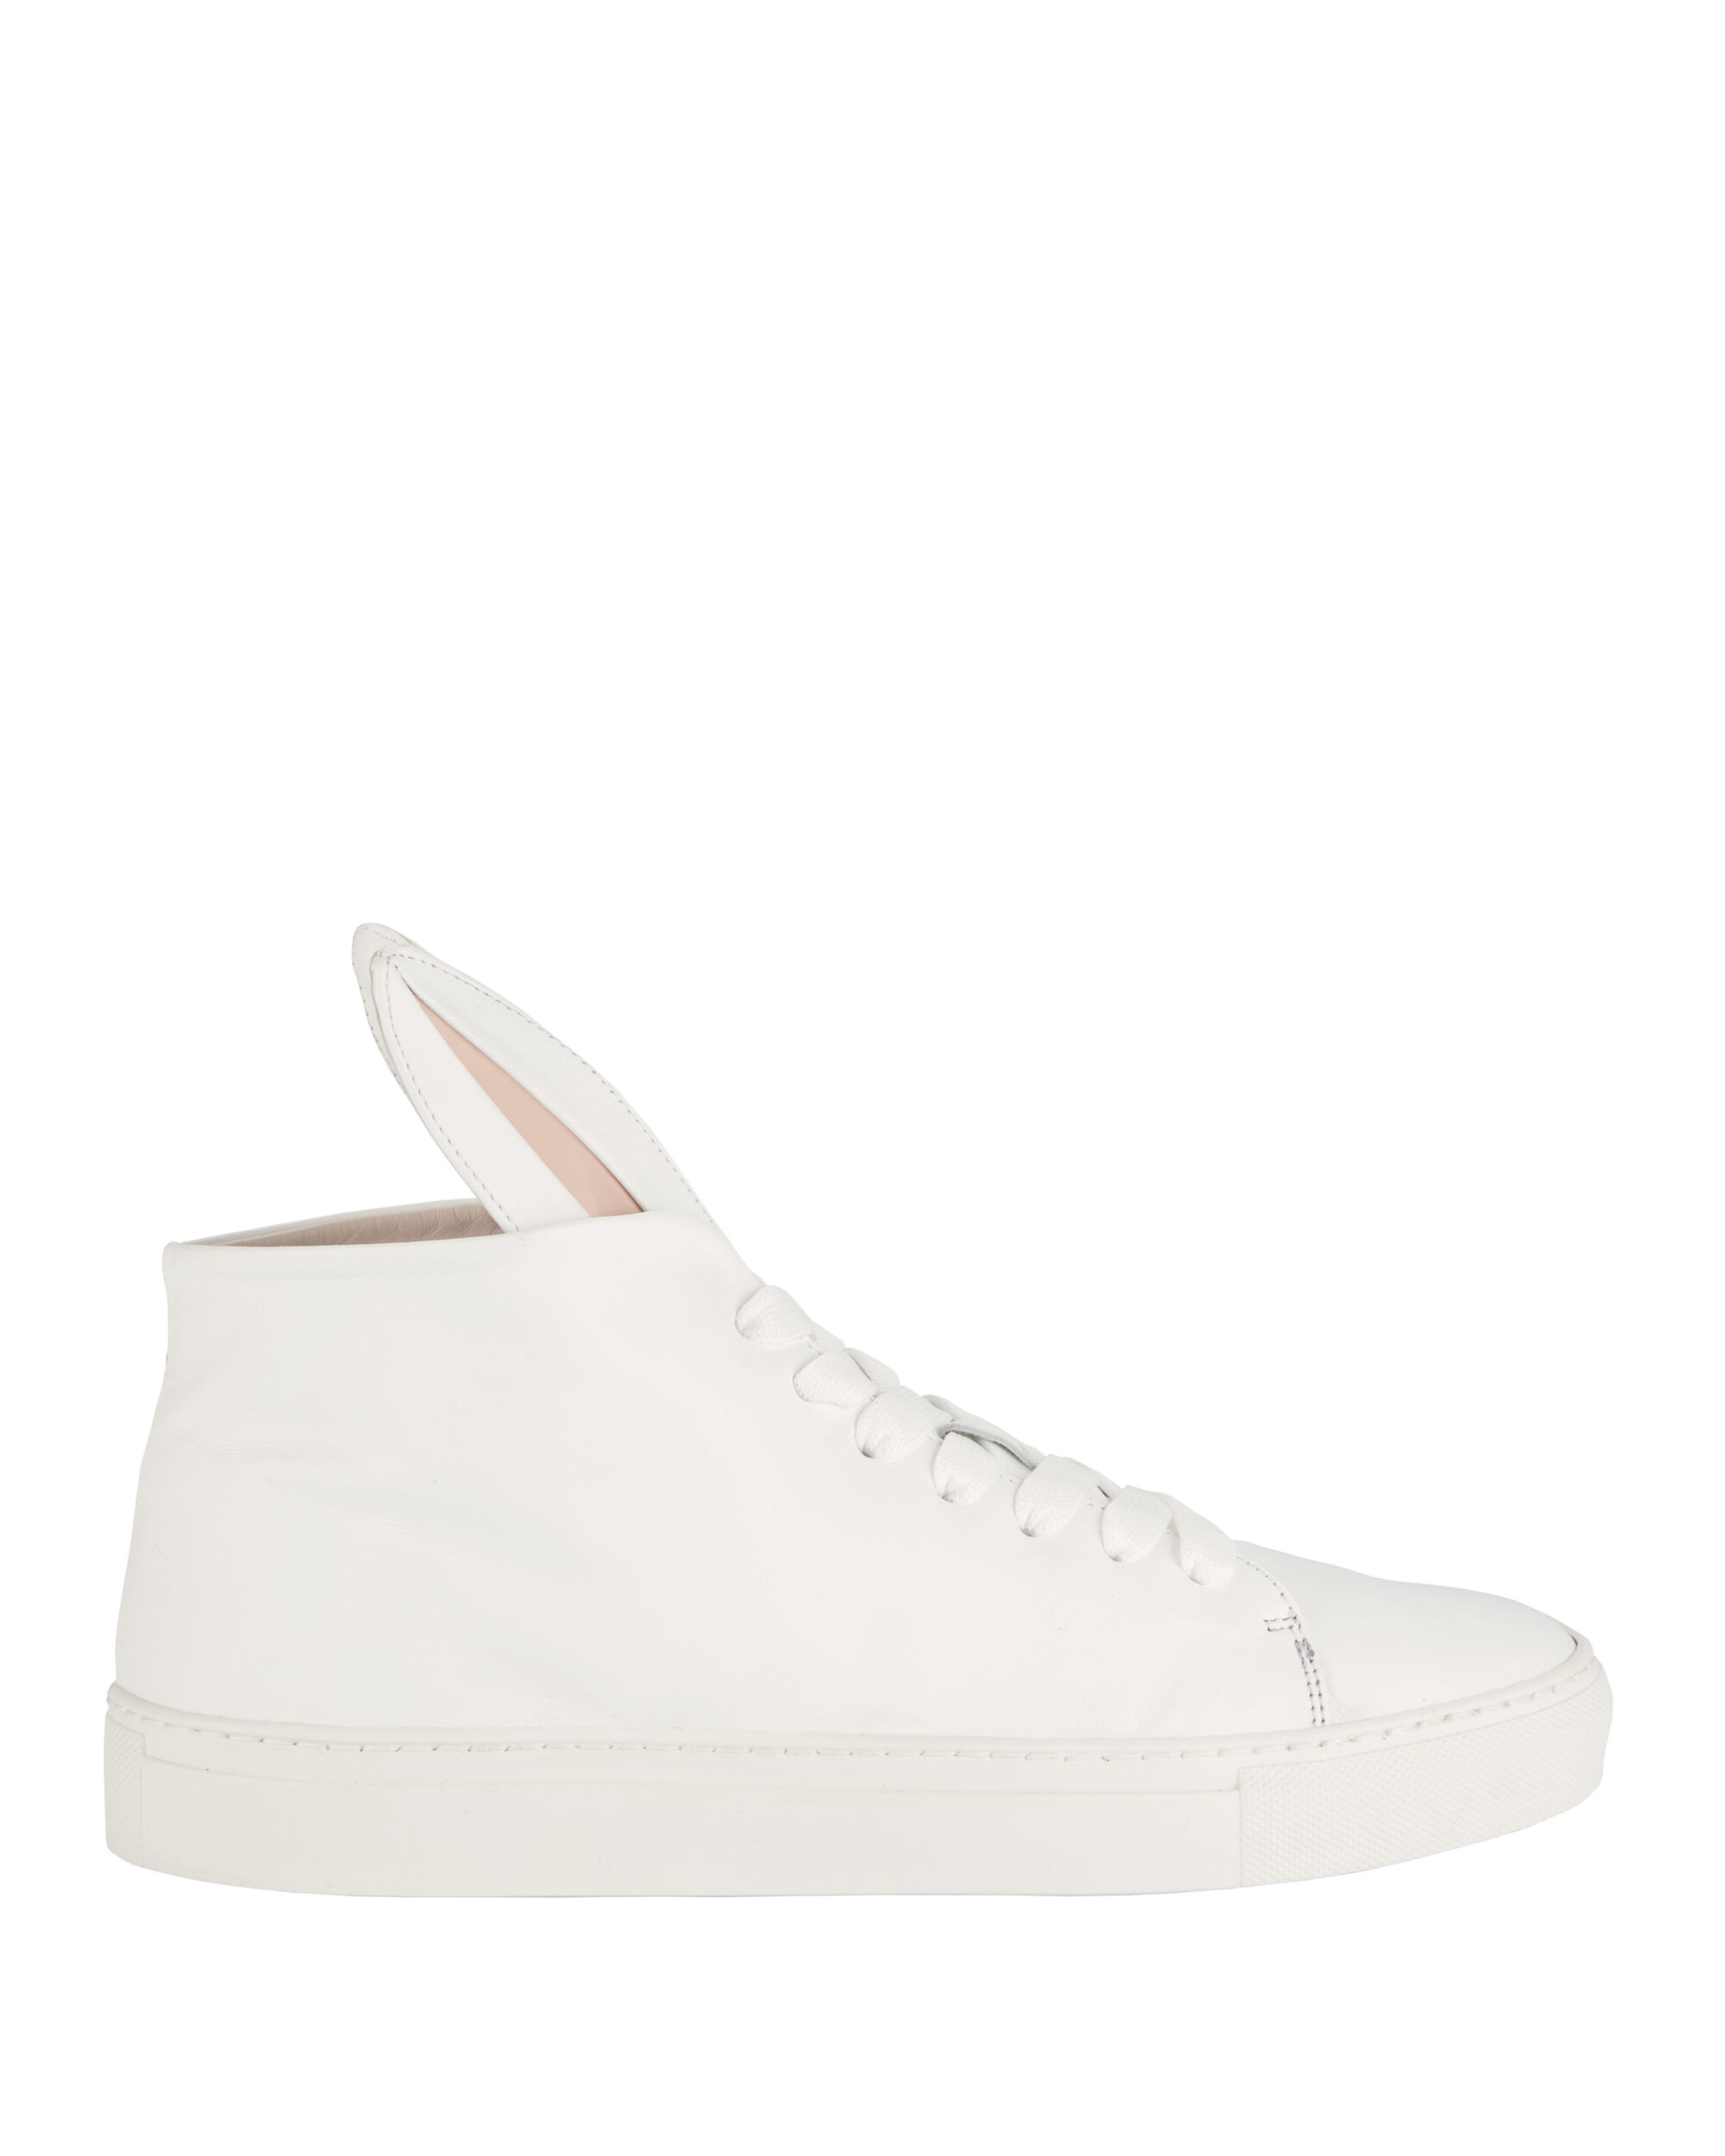 Bunny Hi-Top Leather Sneakers, WHITE, hi-res